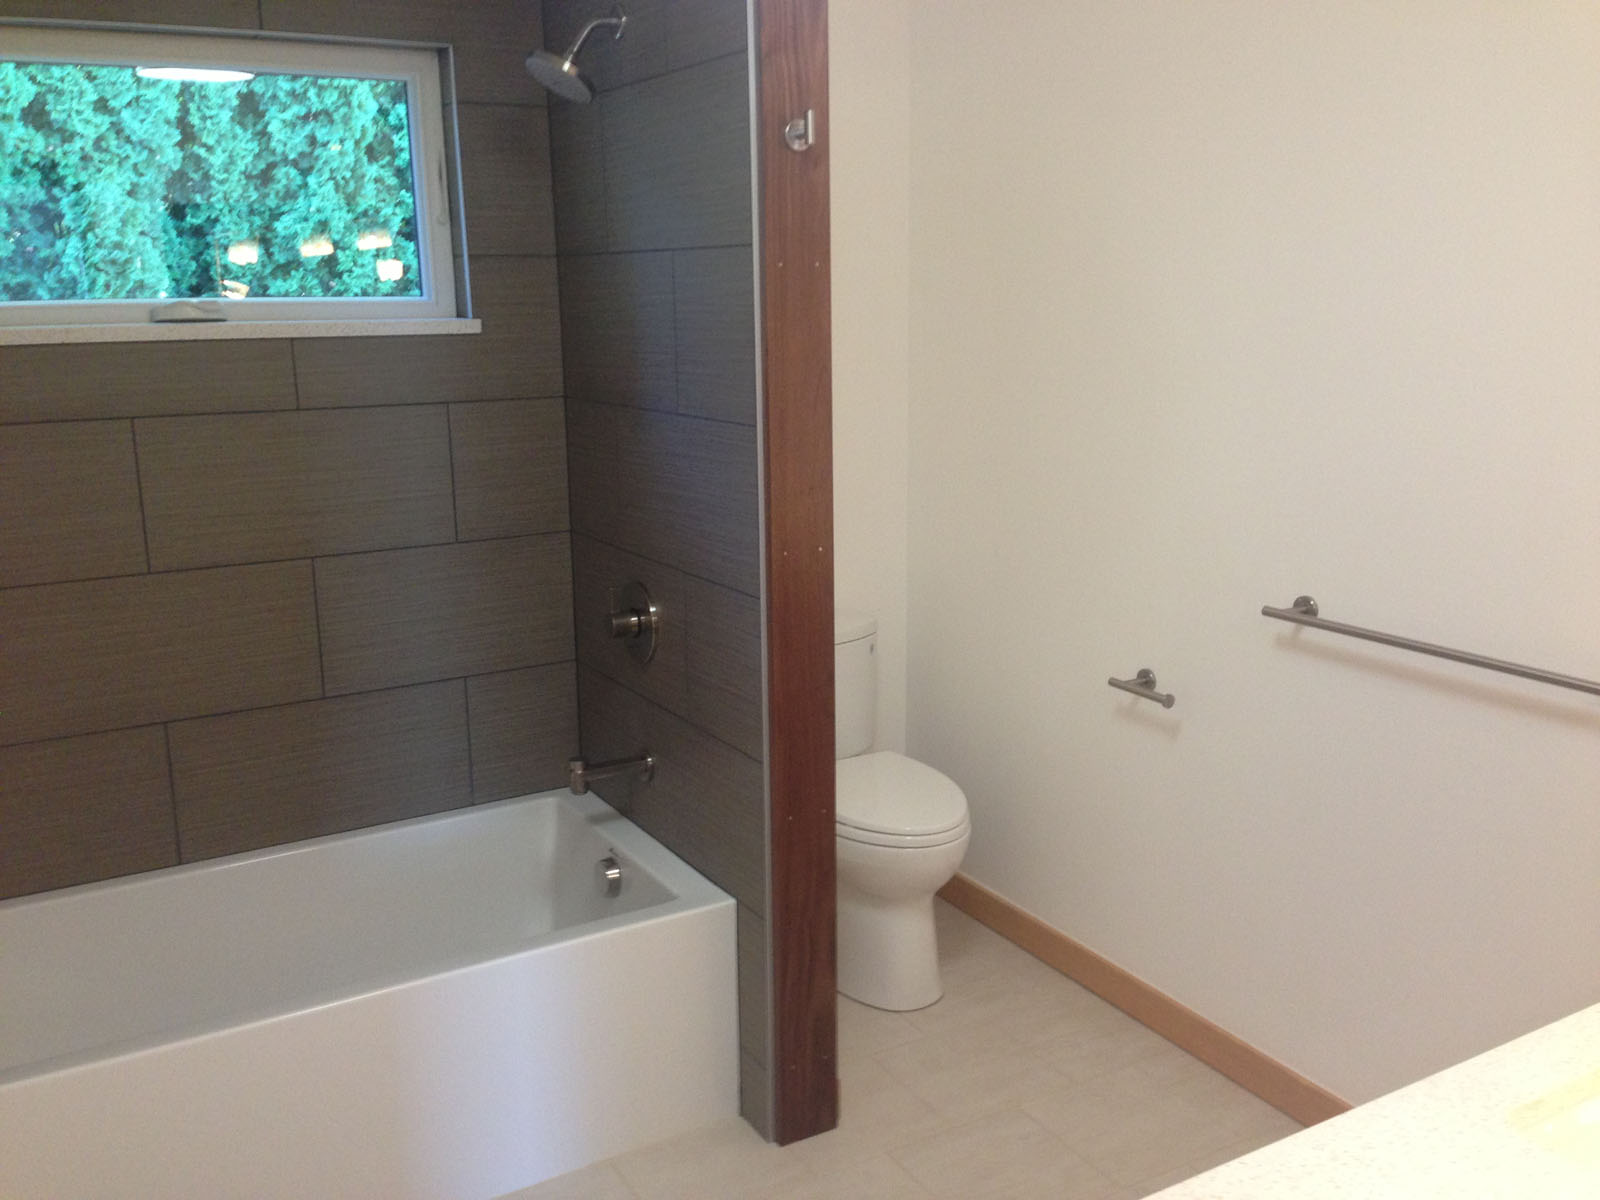 skyline_guestbath_after.jpg